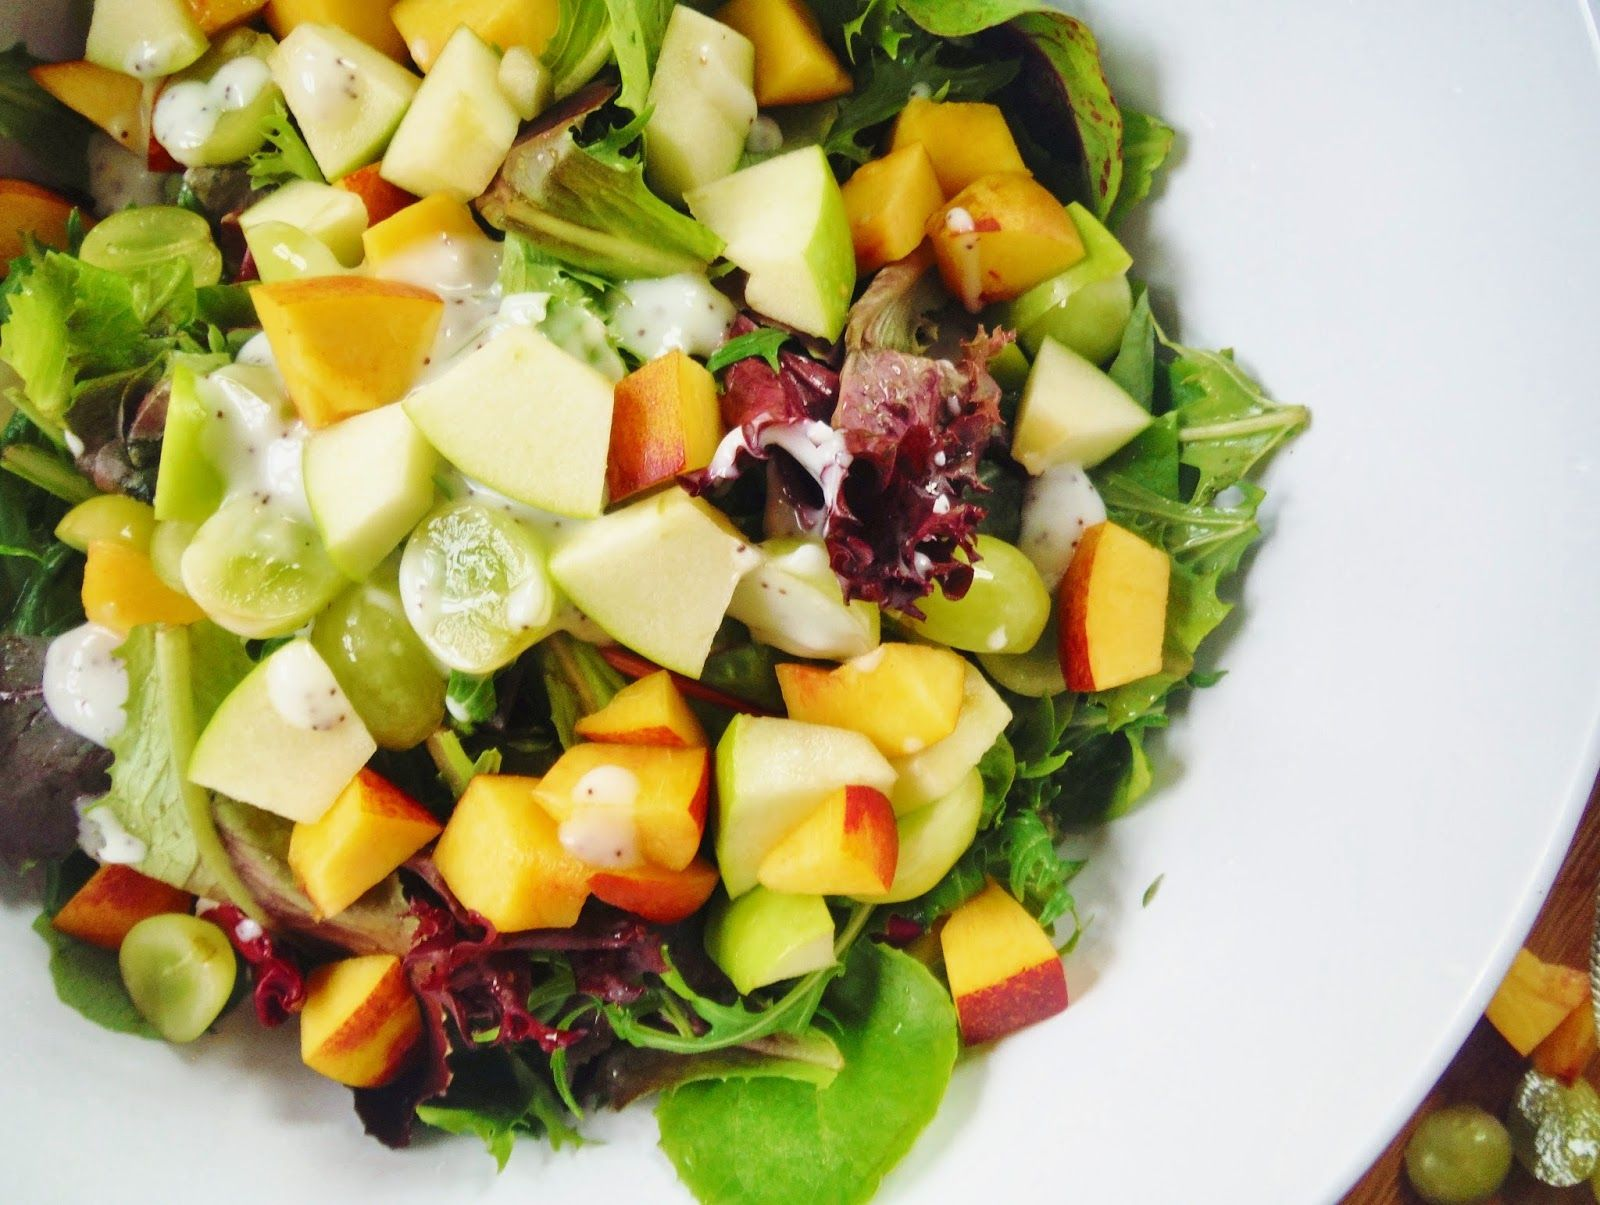 Spring Greens and Mixed Fruit Salad with Poppy Seed Dressing from King's Bakery and Cooking!